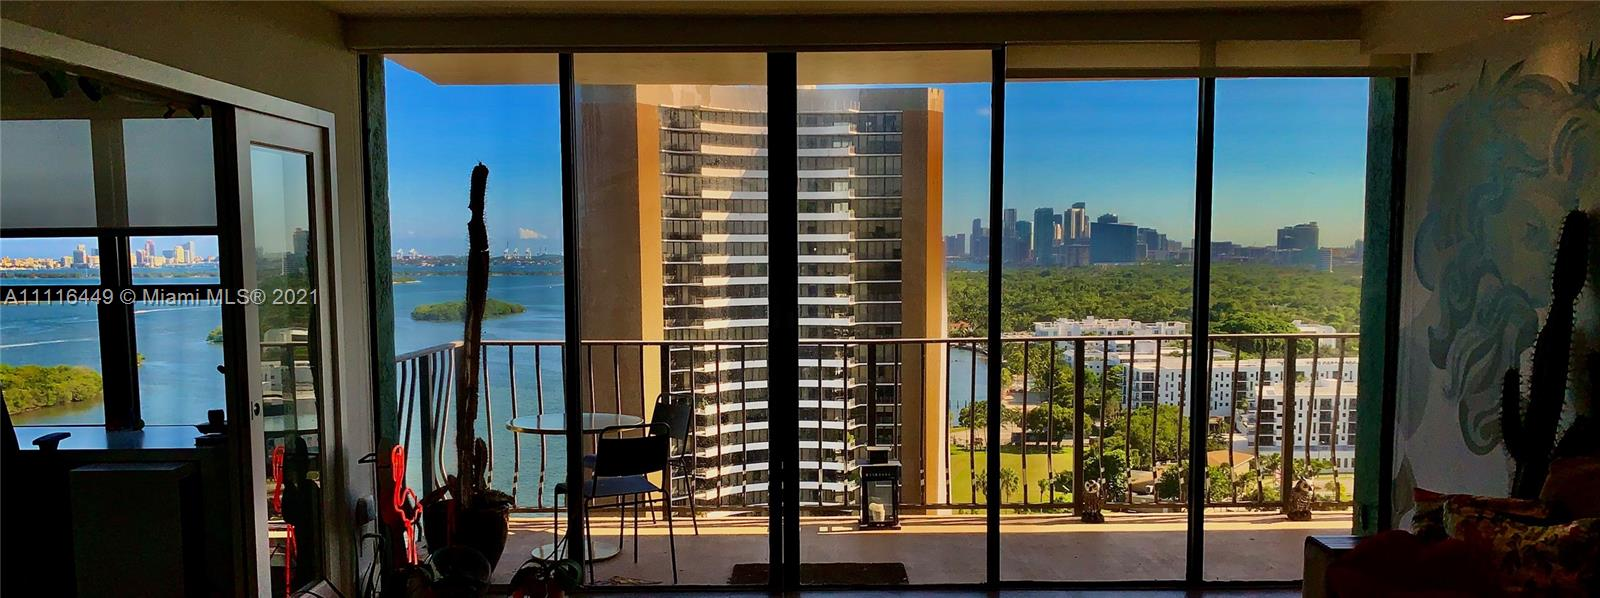 Condo For Sale at THE PALM BAY YACHT CLUB C